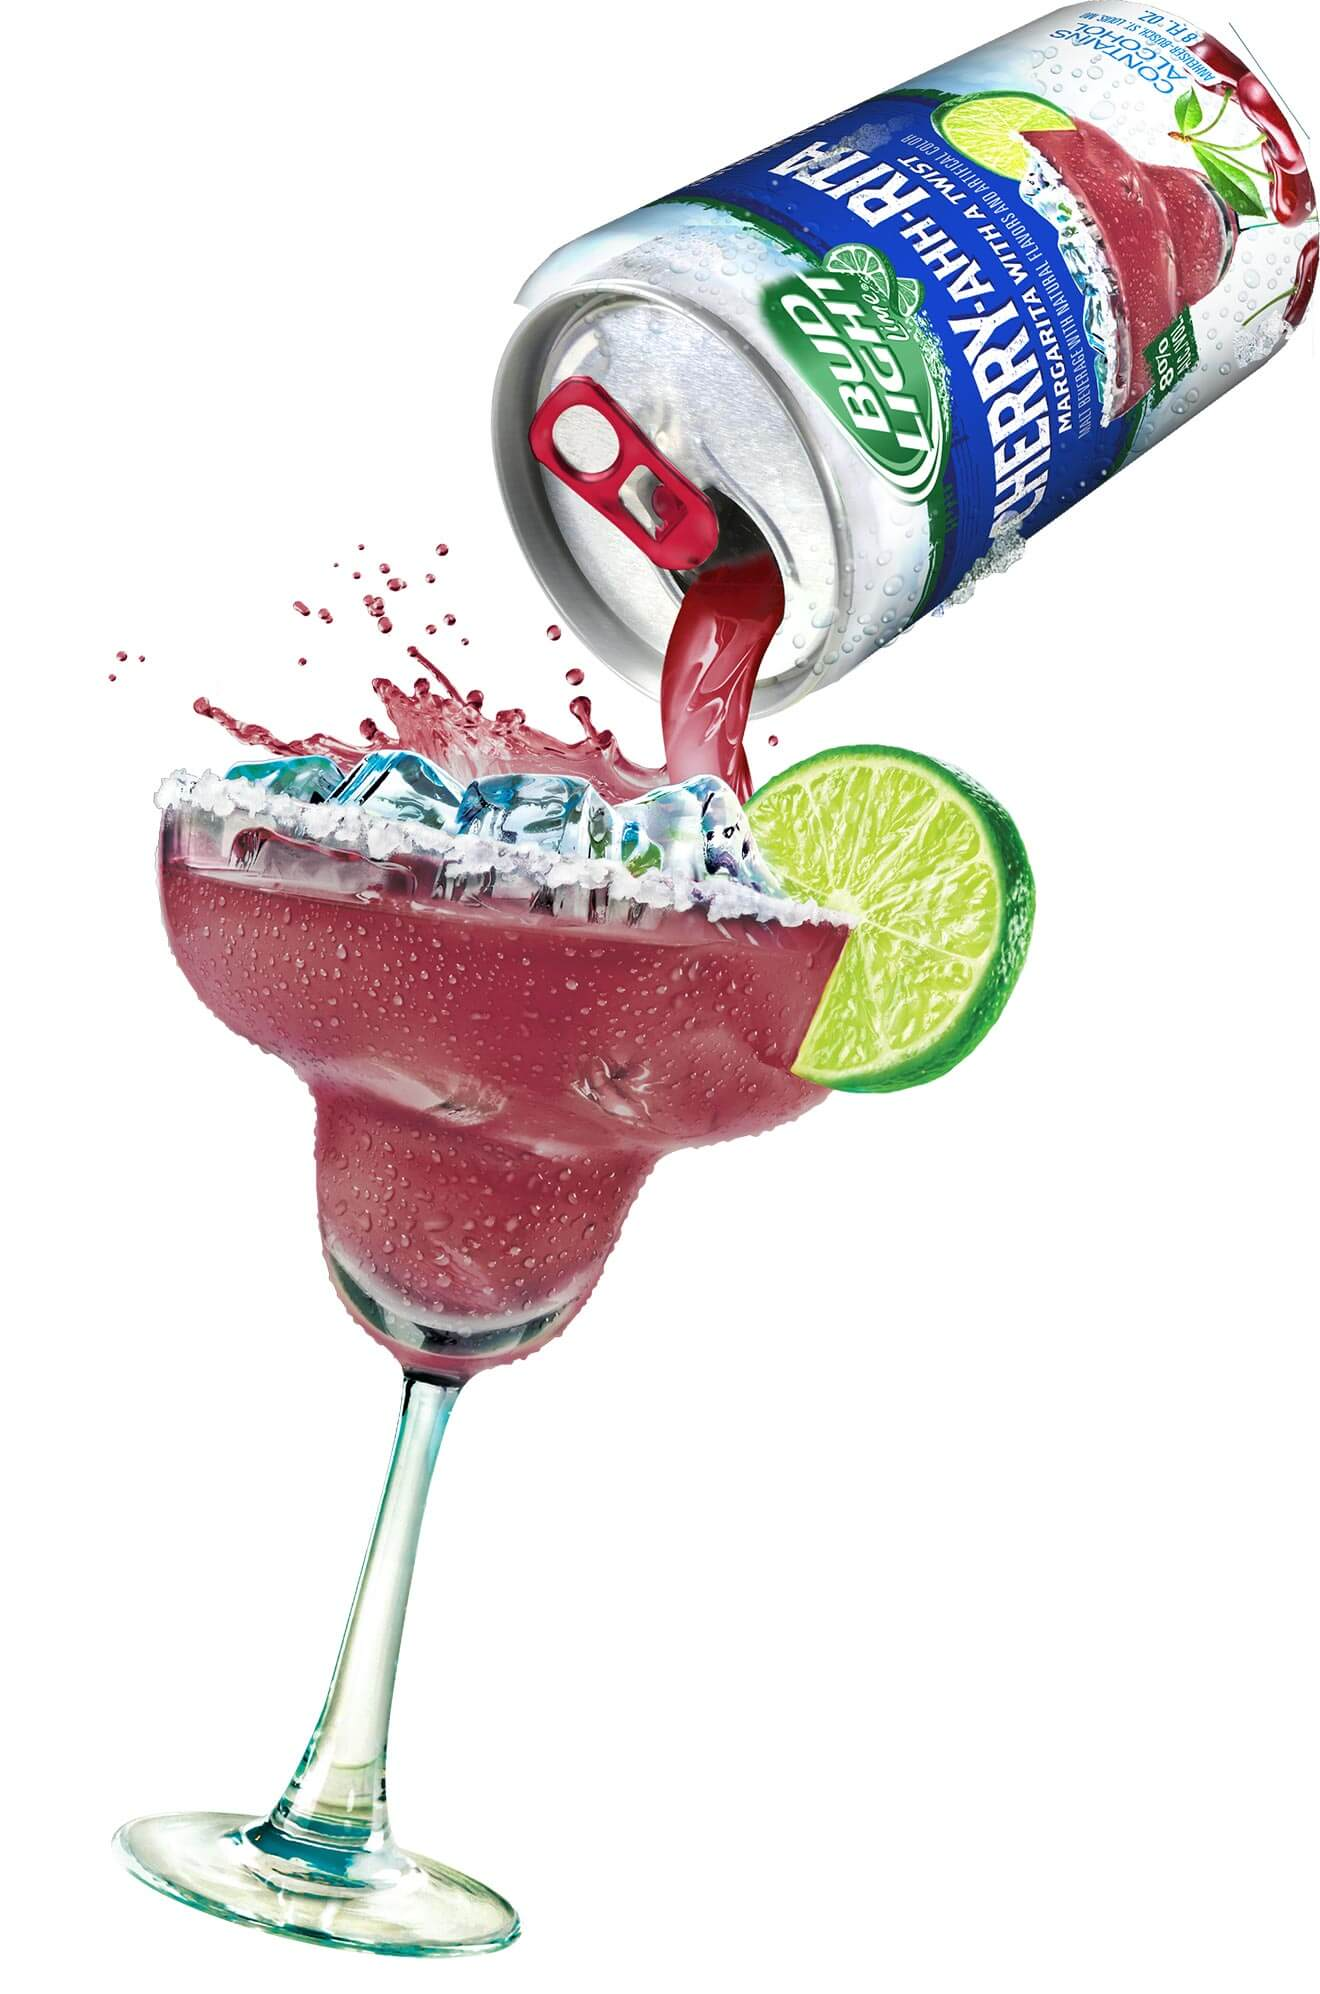 Lime-A-Rita Introduces Cherry-Ahh-Rita, pouring cocktail